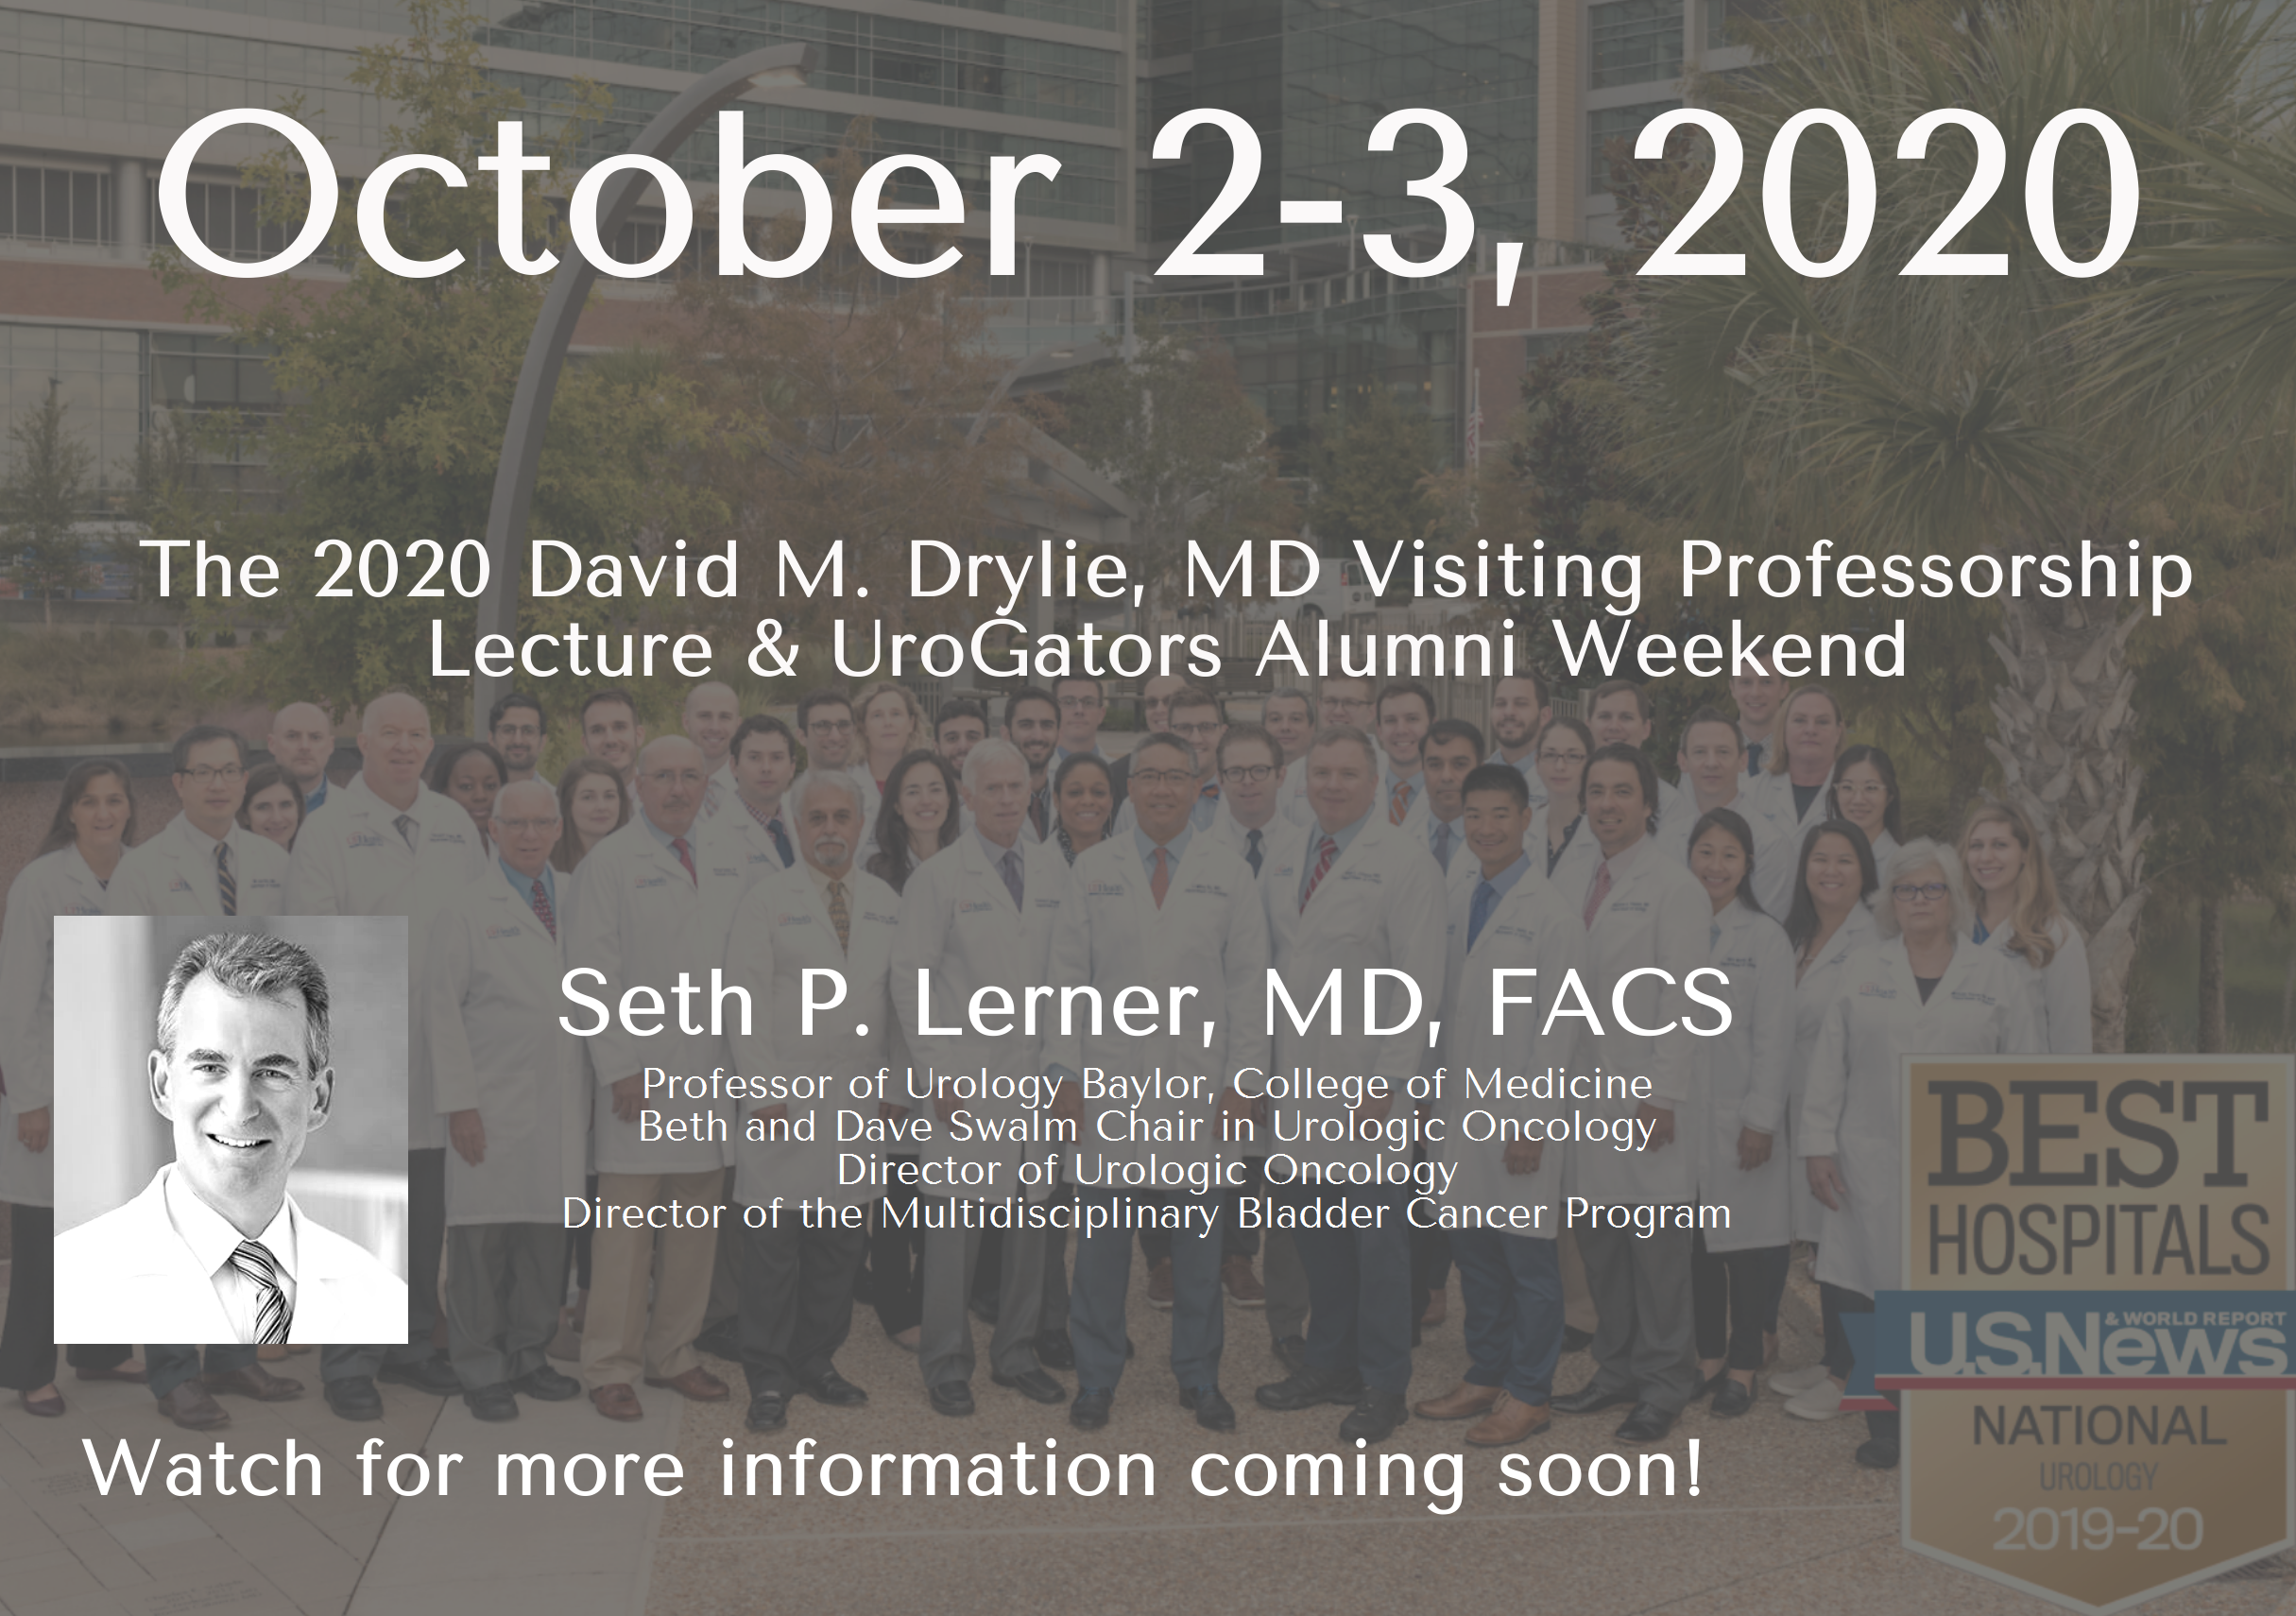 A gray graphic that reads October 2-3, 2020, The 2020 David M. Drylie, MD Visiting Professorship Lecture & UroGators Alumni Weekend, Seth P. Lerner, MD, FACS, Professor of Urology Baylor, College of Medicine, Beth and Dave Swalm Chair in Urologic Oncology, Director of Urologic Oncology, Director of the Multidisciplinary Bladder Cancer Program. Watch for more information coming soon! The graphic features the faculty and residents of uf urology. they are in their white doctor coats. it also features the best hospitals graphic. the text reads best hospitals us news national urology 2019-2020. the graphic has a picture of doctor lerner. he is in his white doctor coat. the picture is black and white.